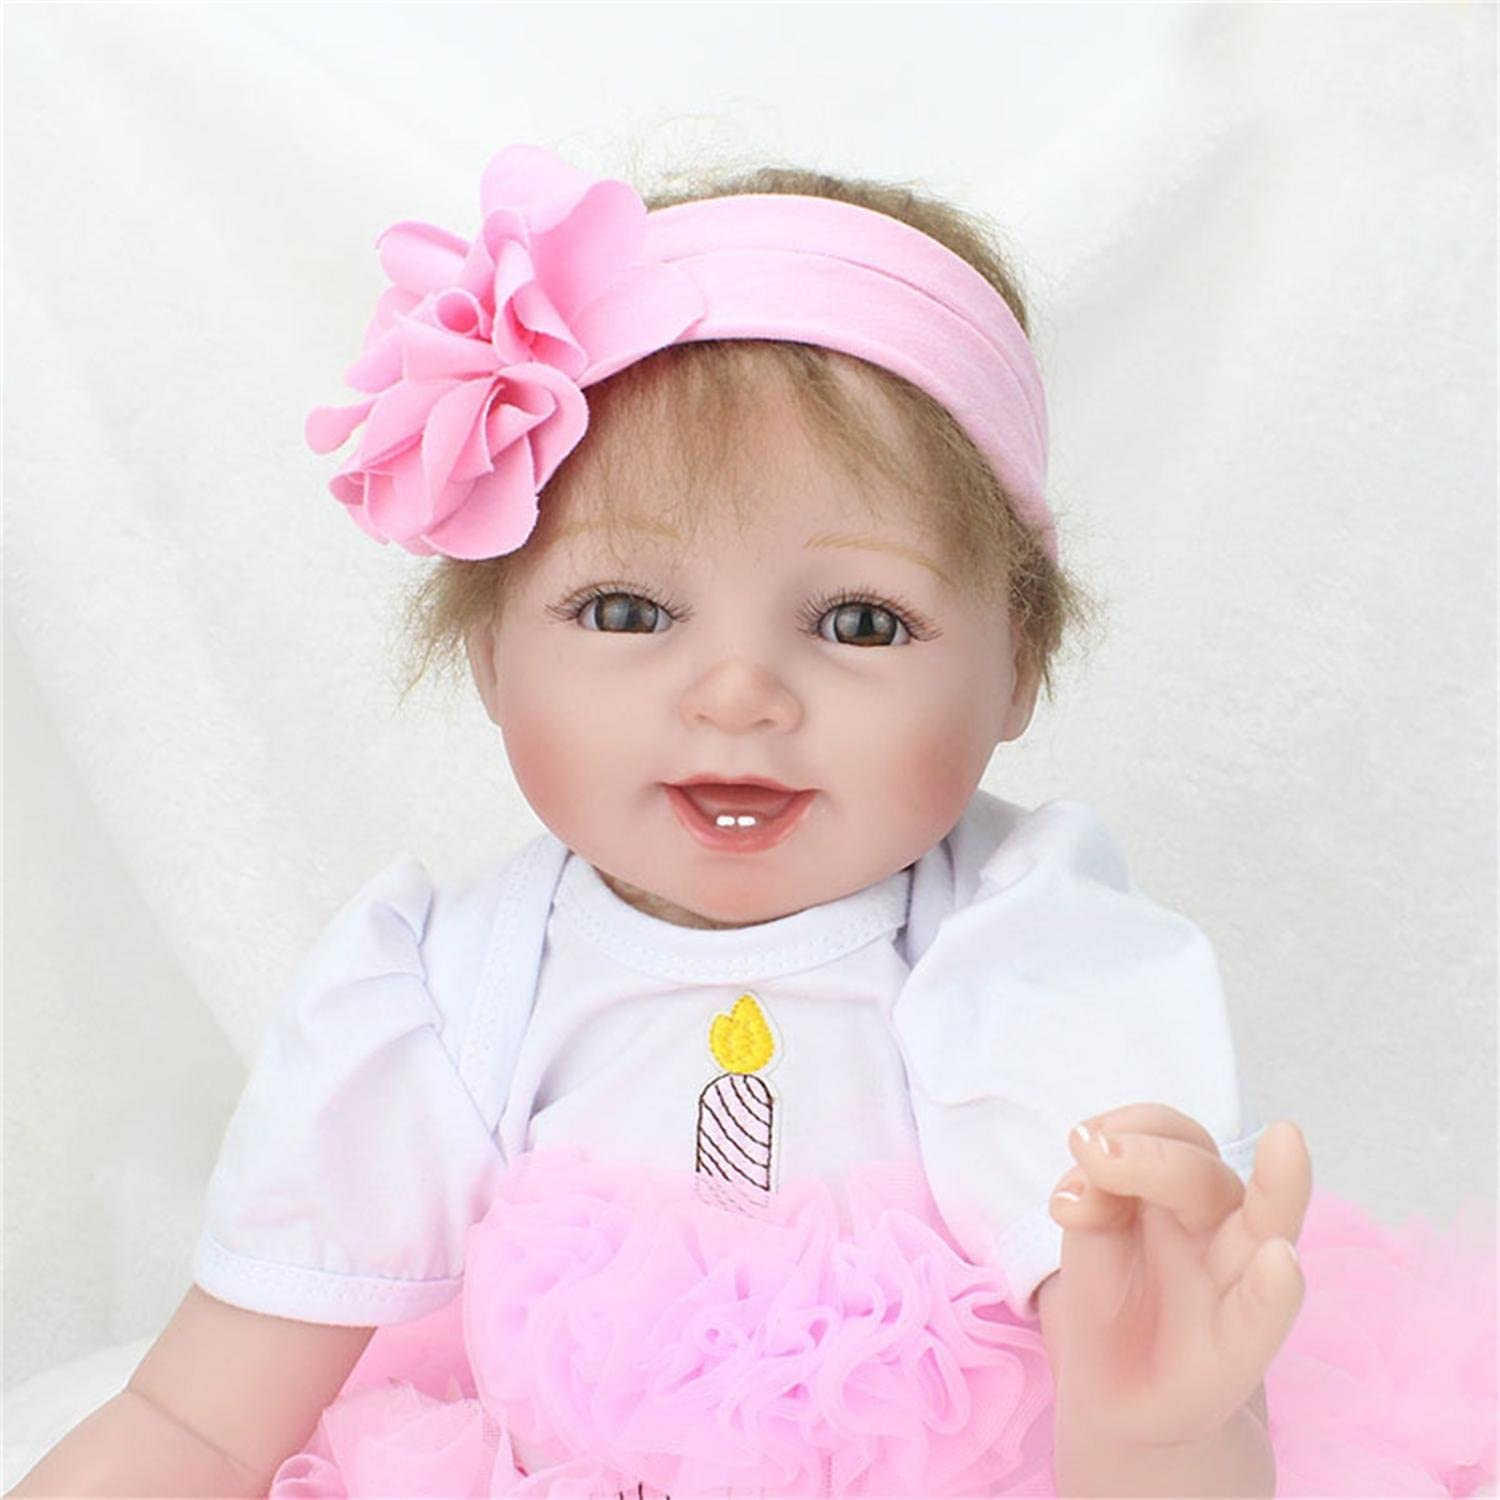 22 Inch Lifelike Reborn Baby Dolls Outlet SALE Soft Open Vinyl Girls Si Eyes Be super welcome